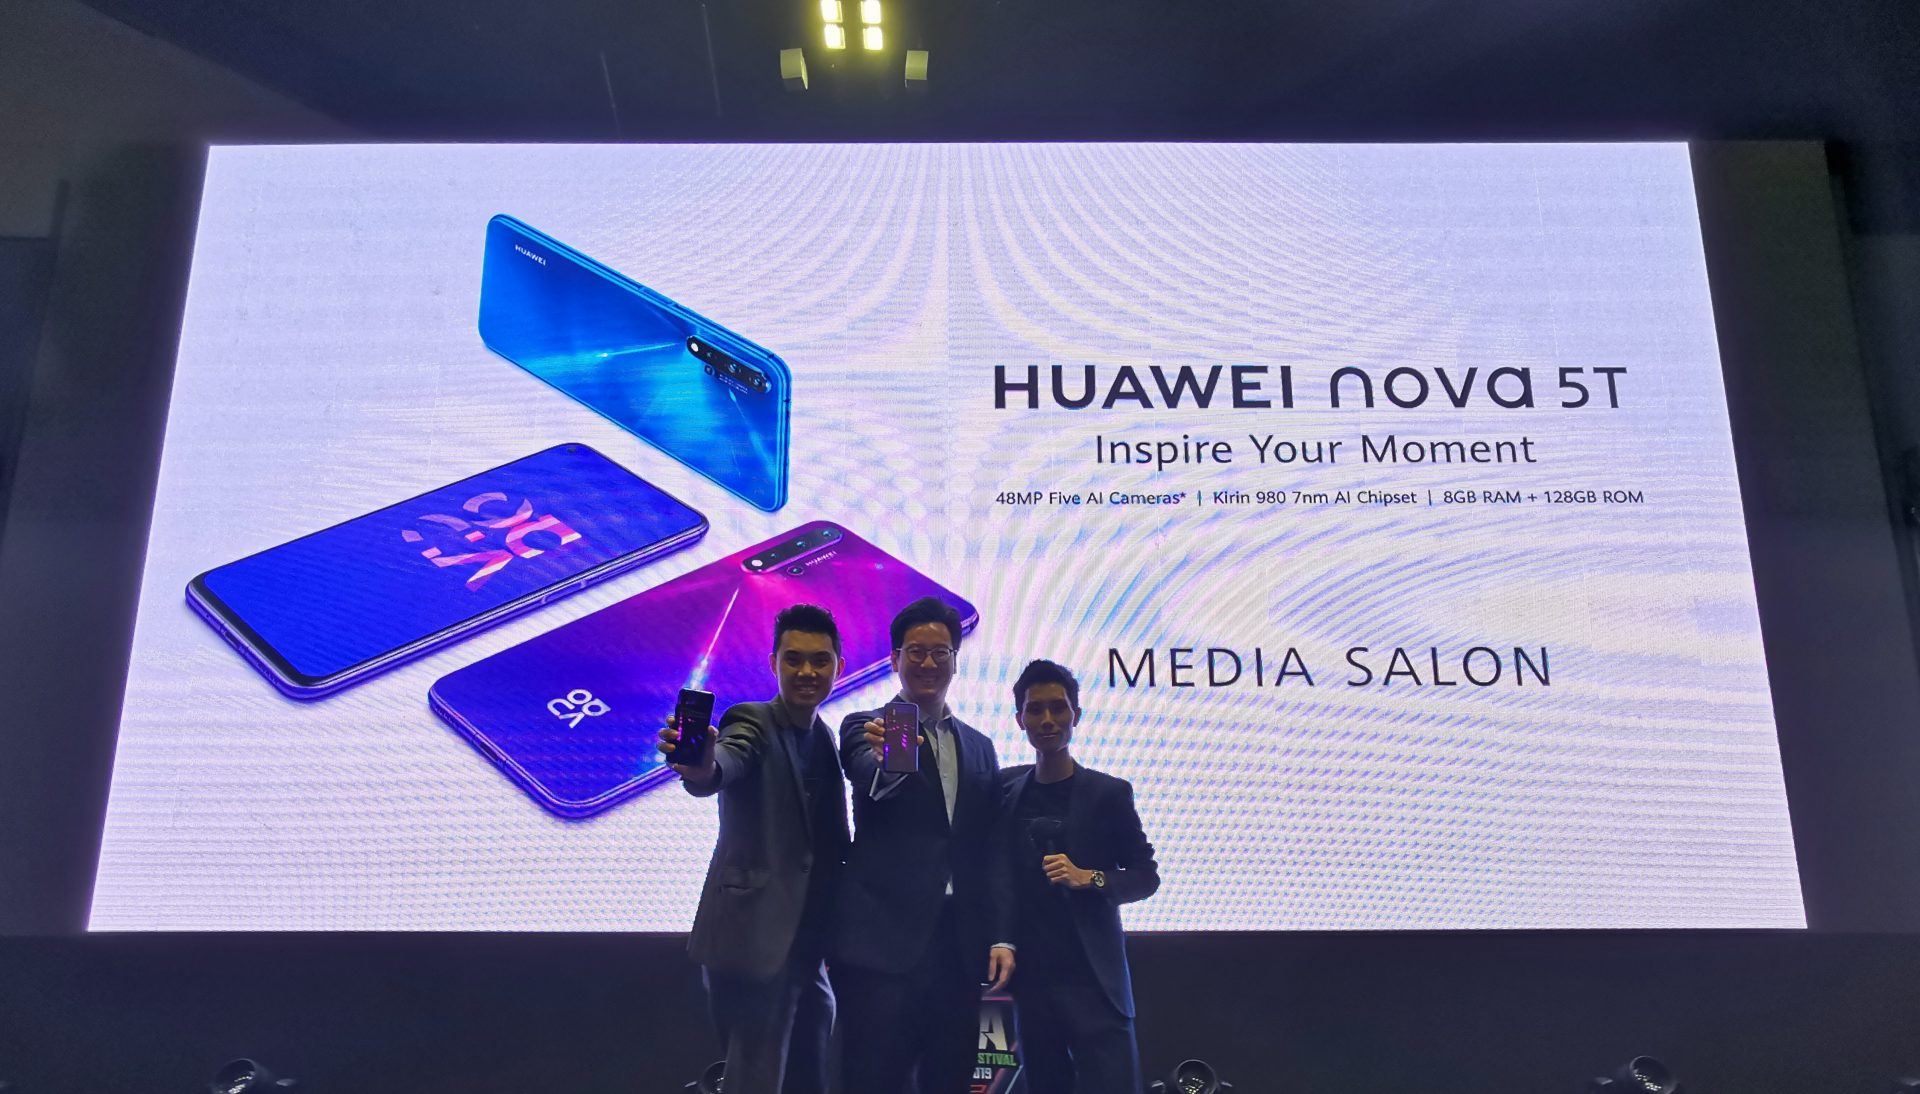 Huawei Nova 5t Unleashed In Singapore The Tech Revolutionist